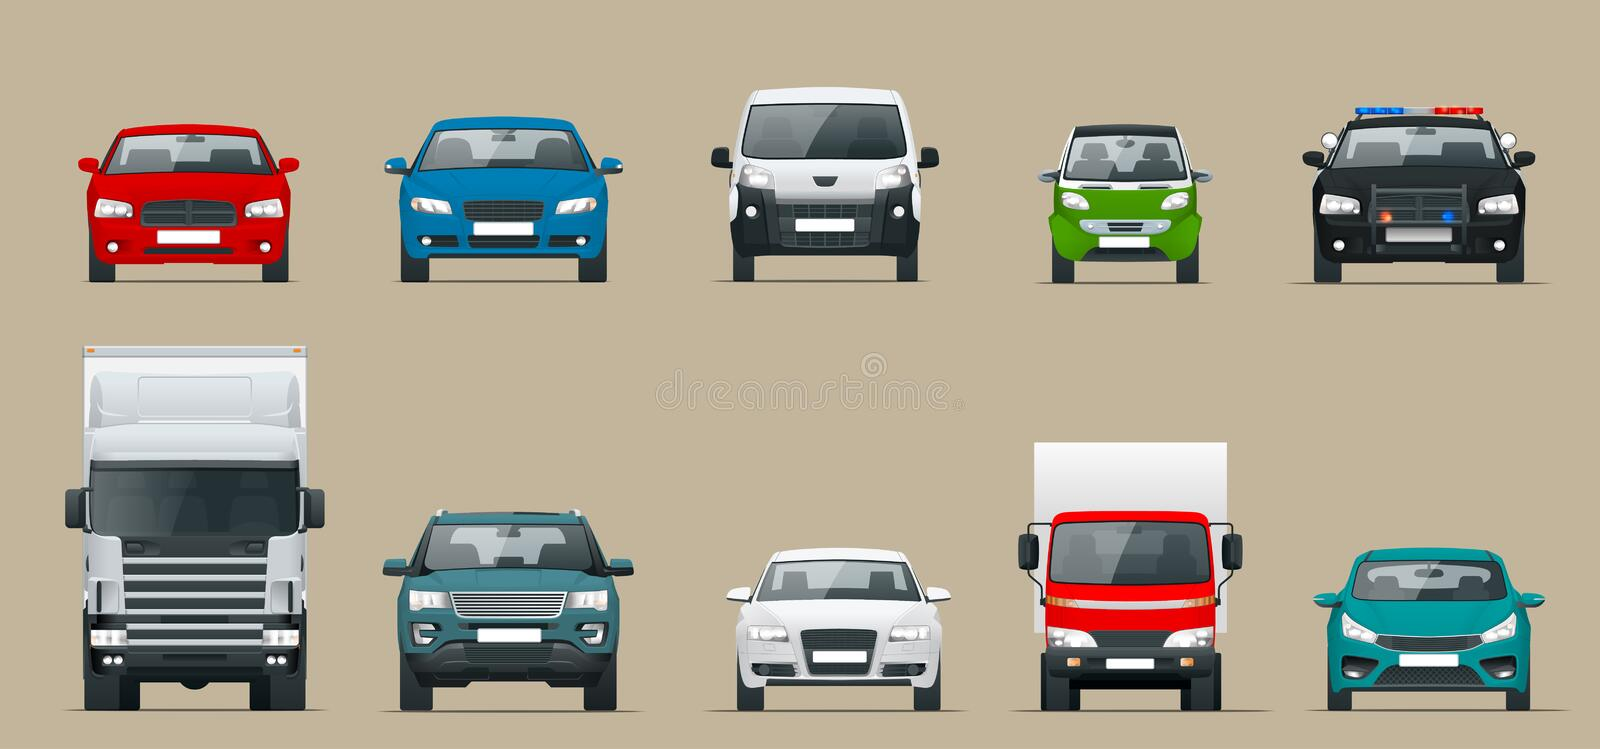 Car front view set. Vehicles driving in the city. Vector flat style cartoon illustration isolated on grey background royalty free illustration